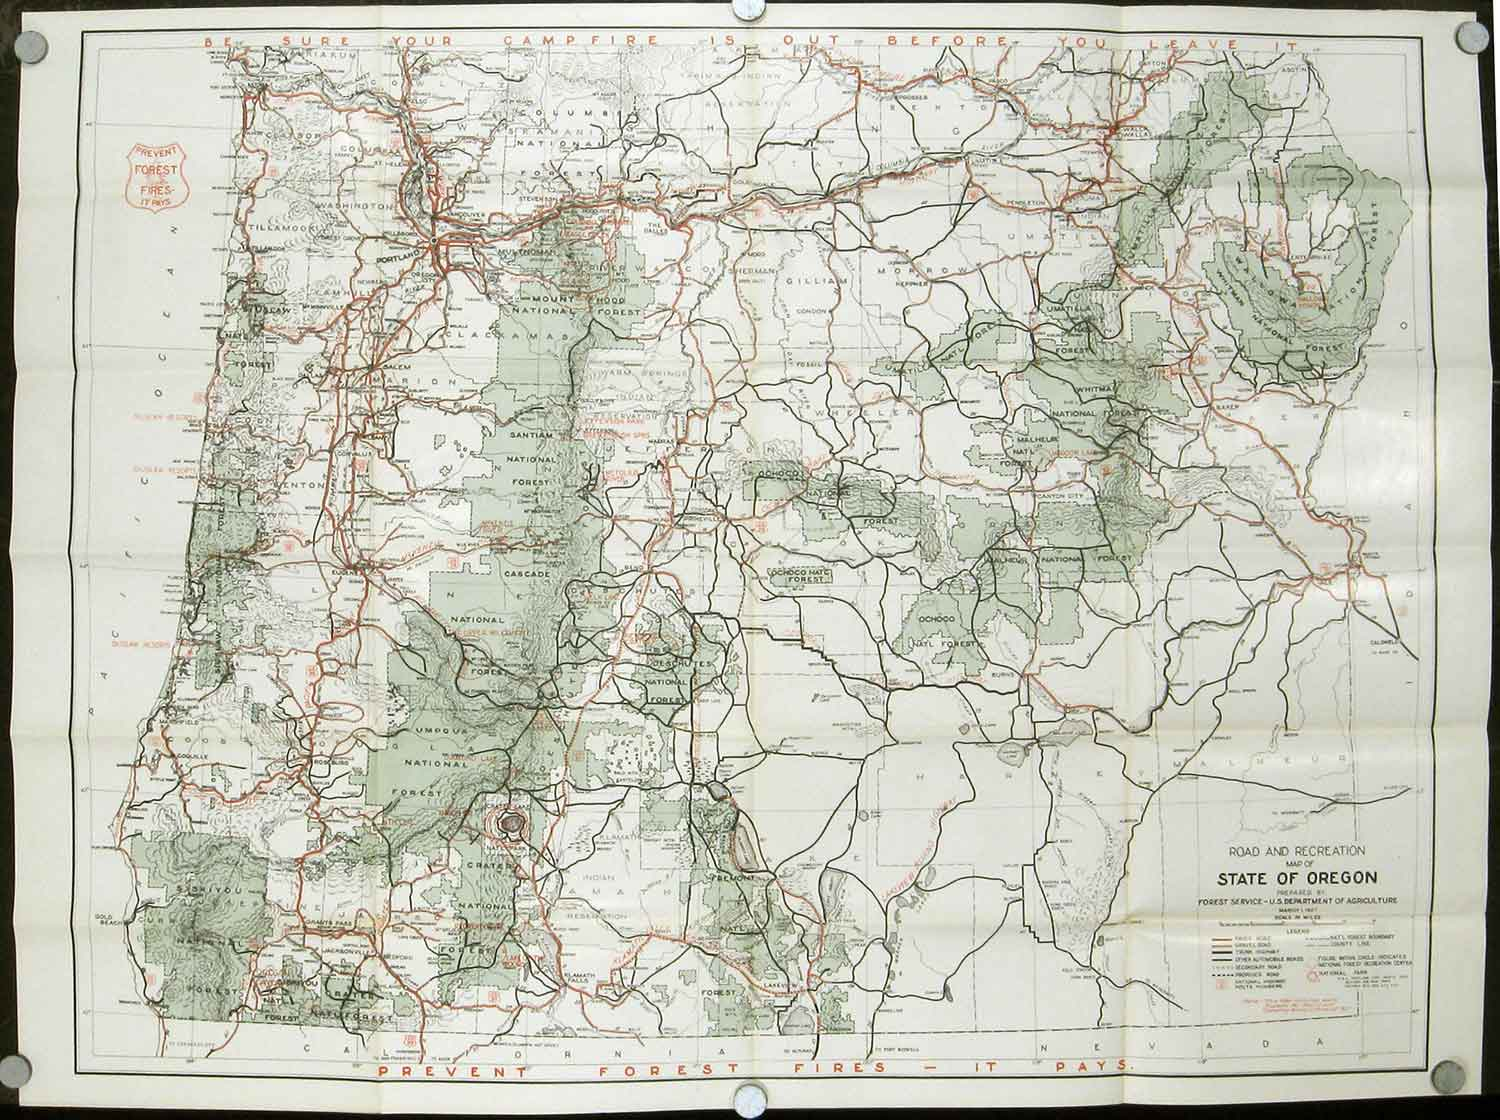 Road And Information Map For The National Forests Of Oregon US - Oregon road maps